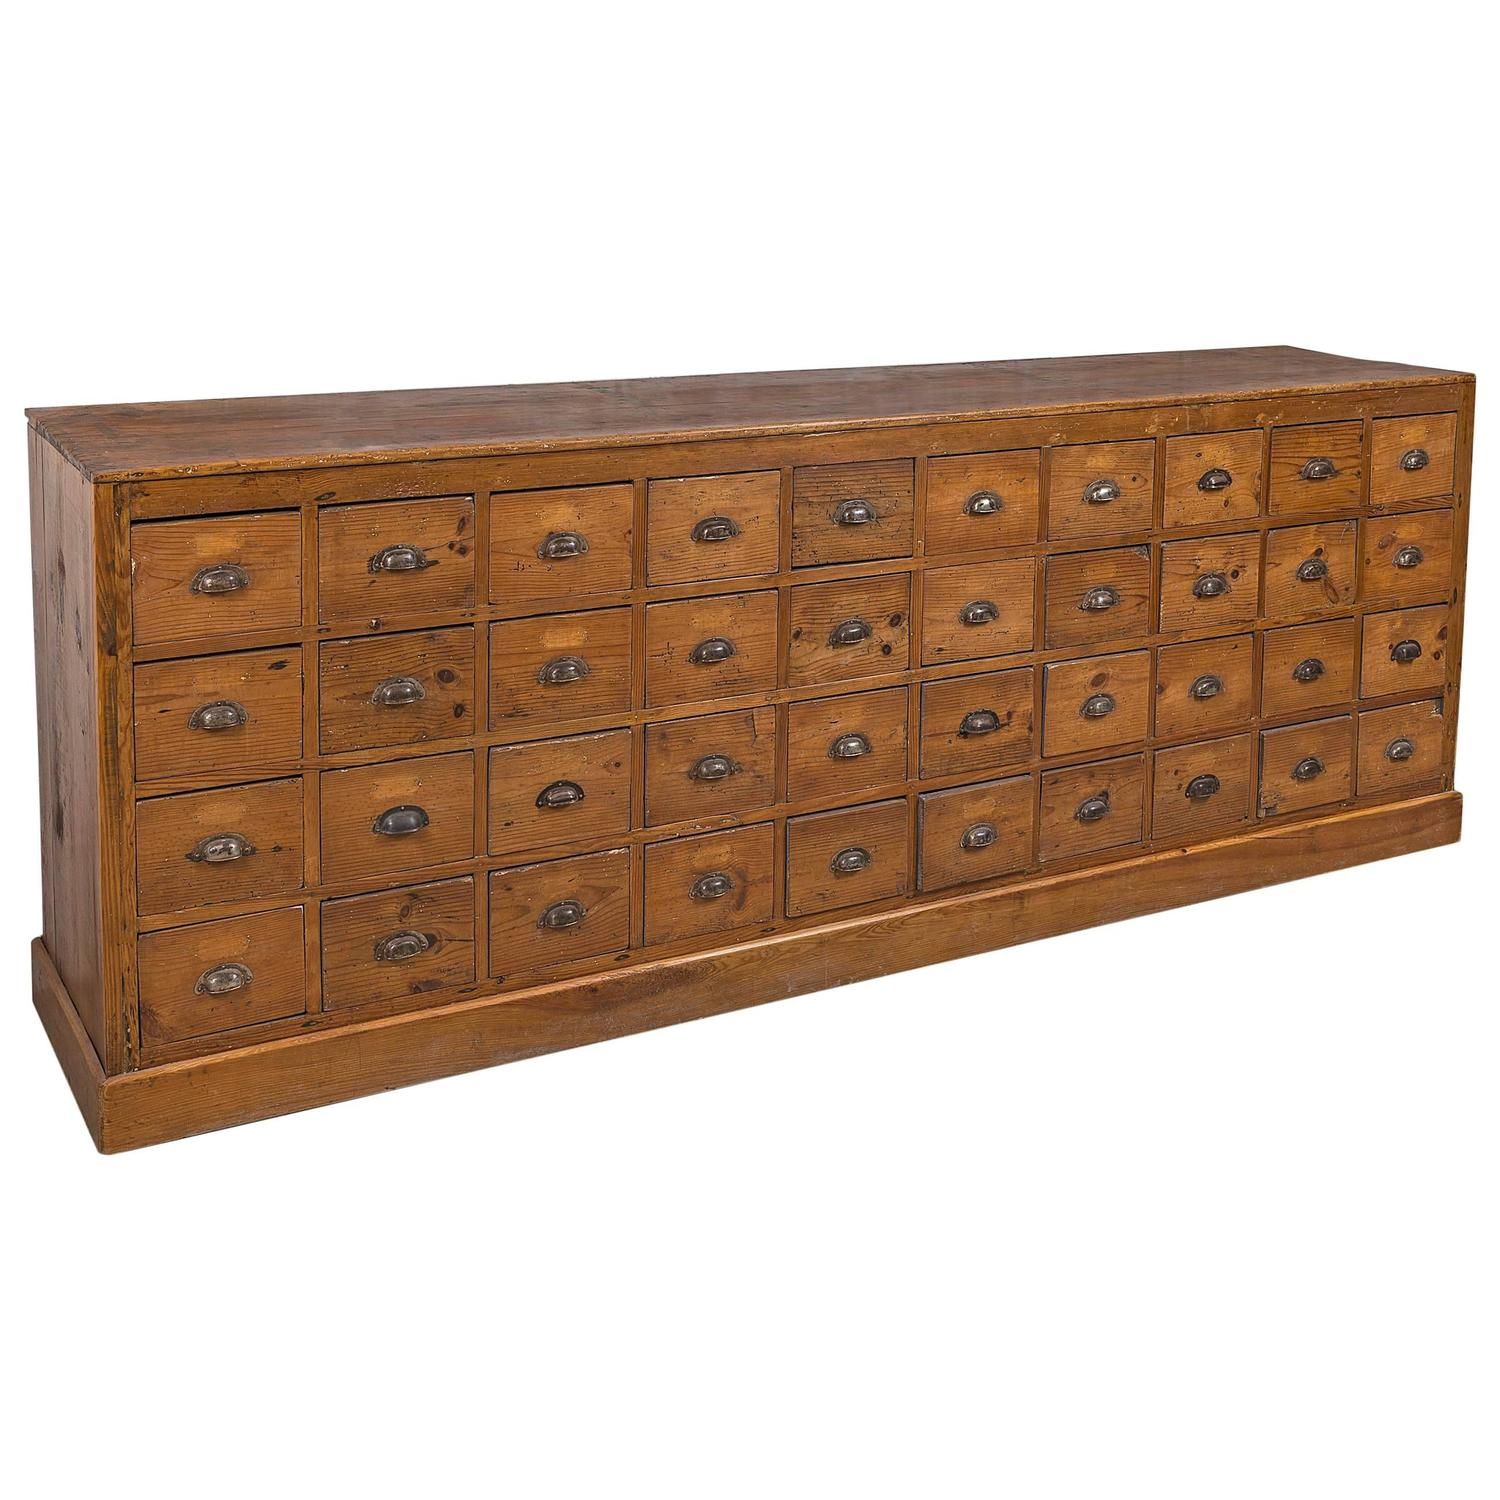 Apothecary Cabinet Enchanting Of Wooden Apothecary Cabinet Photos